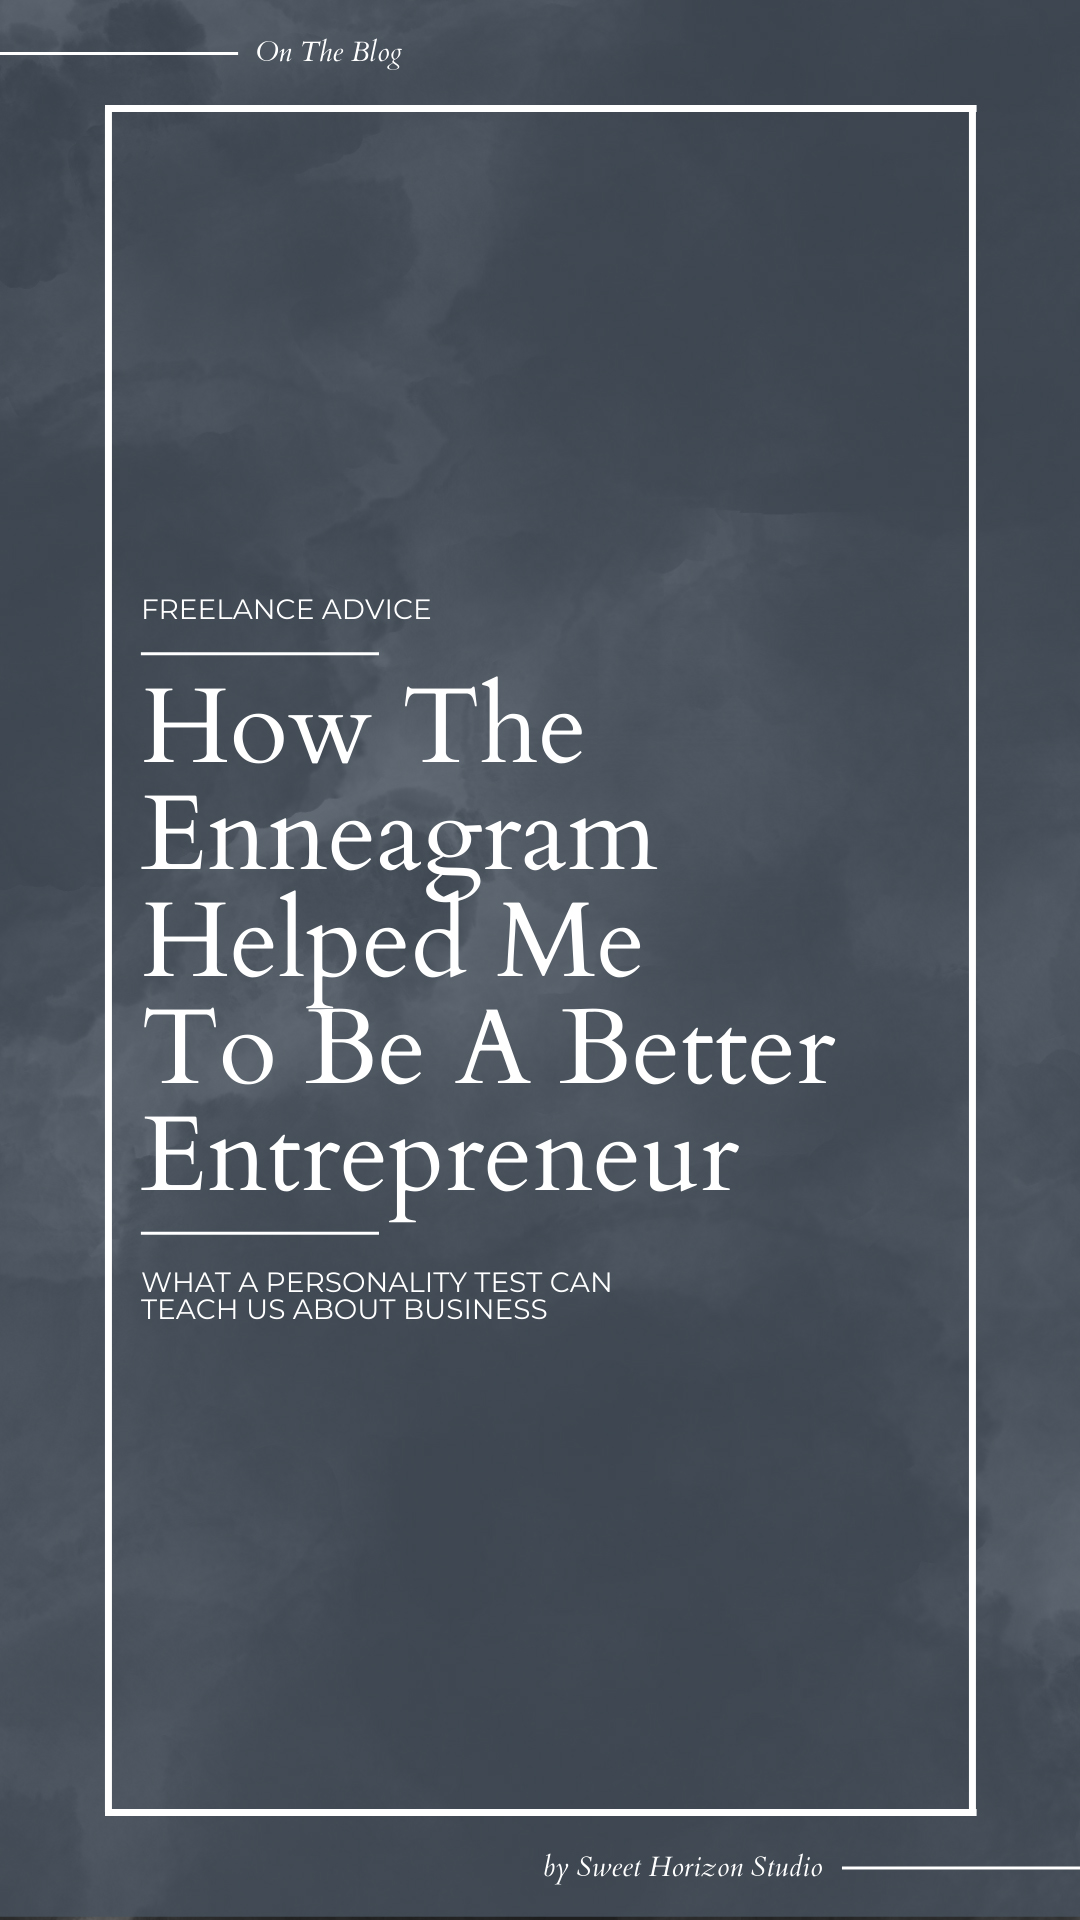 How The Enneagram Helped Me To Be A Better Entrepreneur from www.sweethorizonblog.com